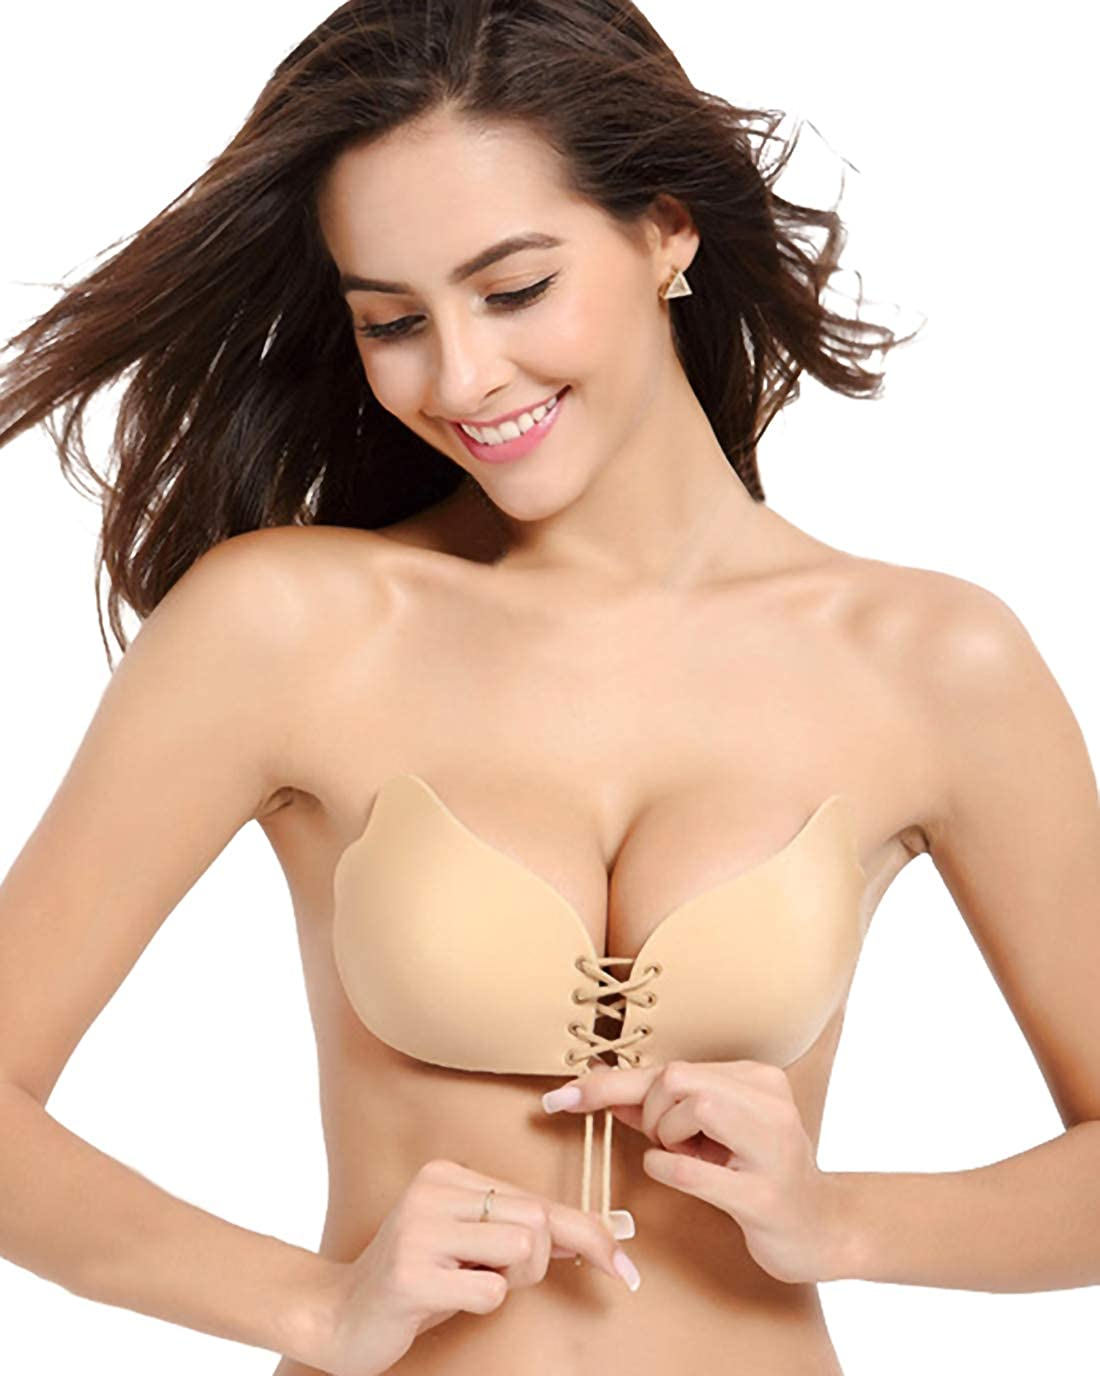 Beige Muryobao Strapless Self Adhesive Backless Bras Silicone Push up Bra for Women (2 Pack FBA)